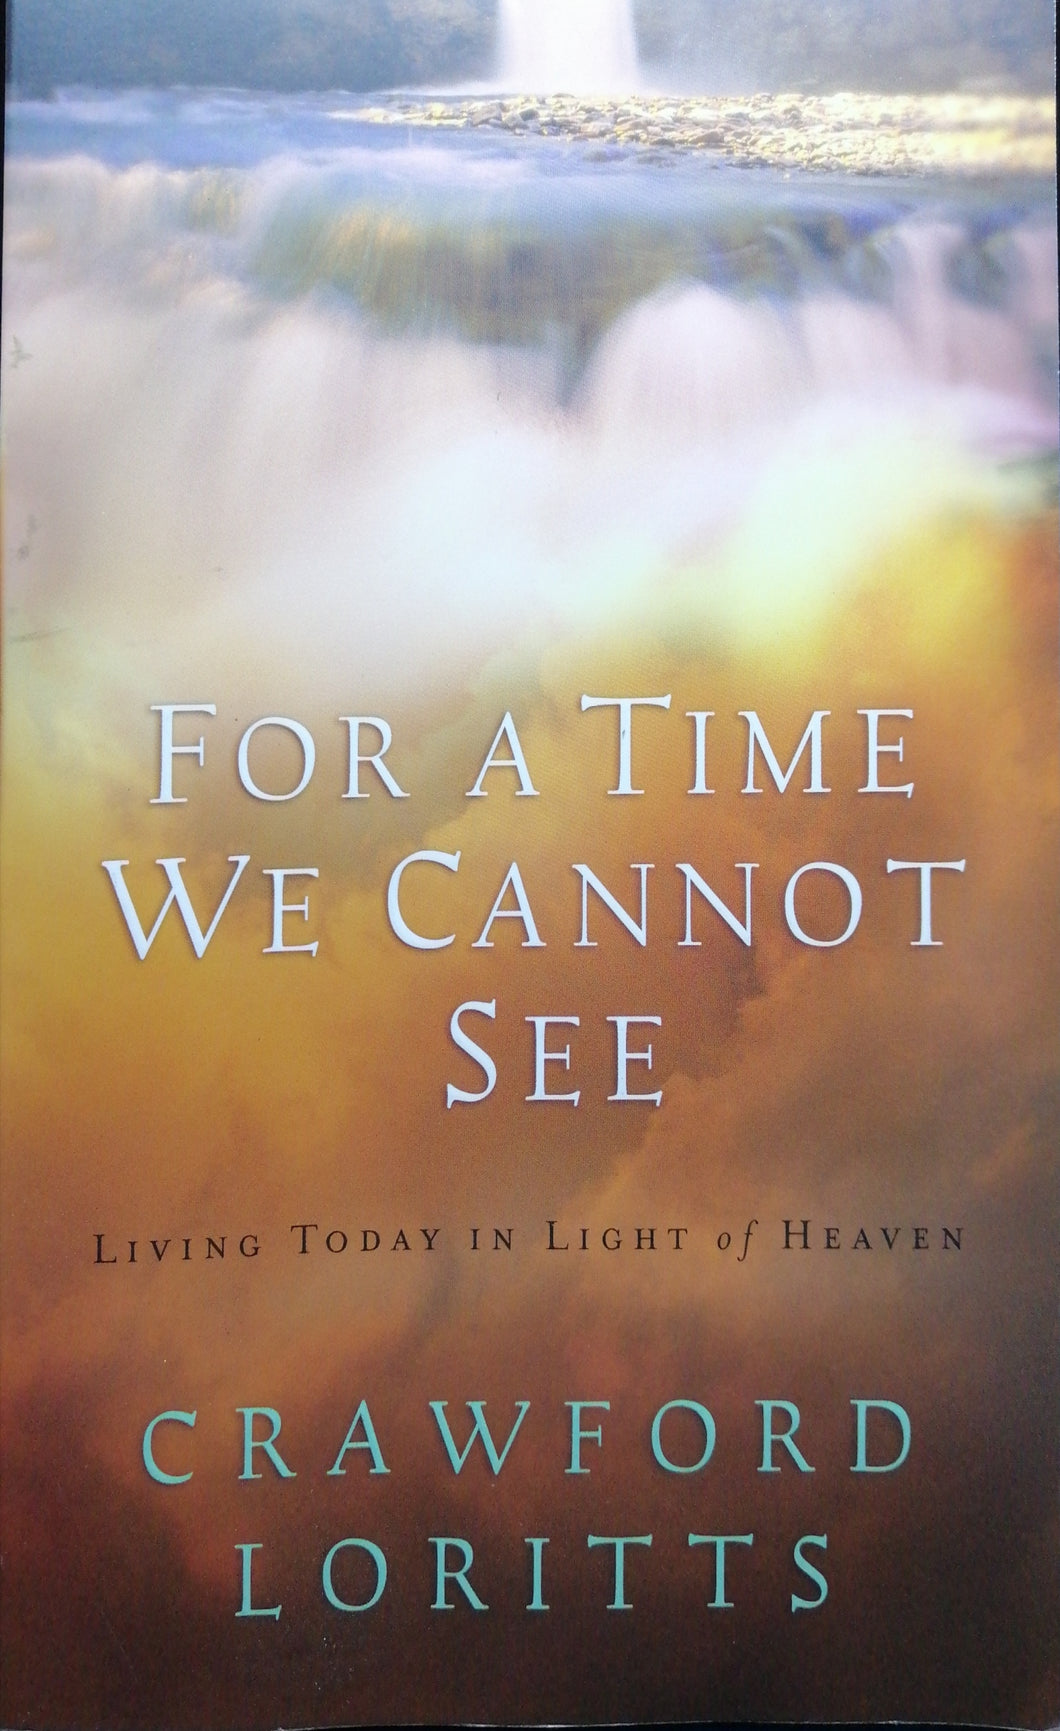 For A Time We Cannot See by Crawford Loritts